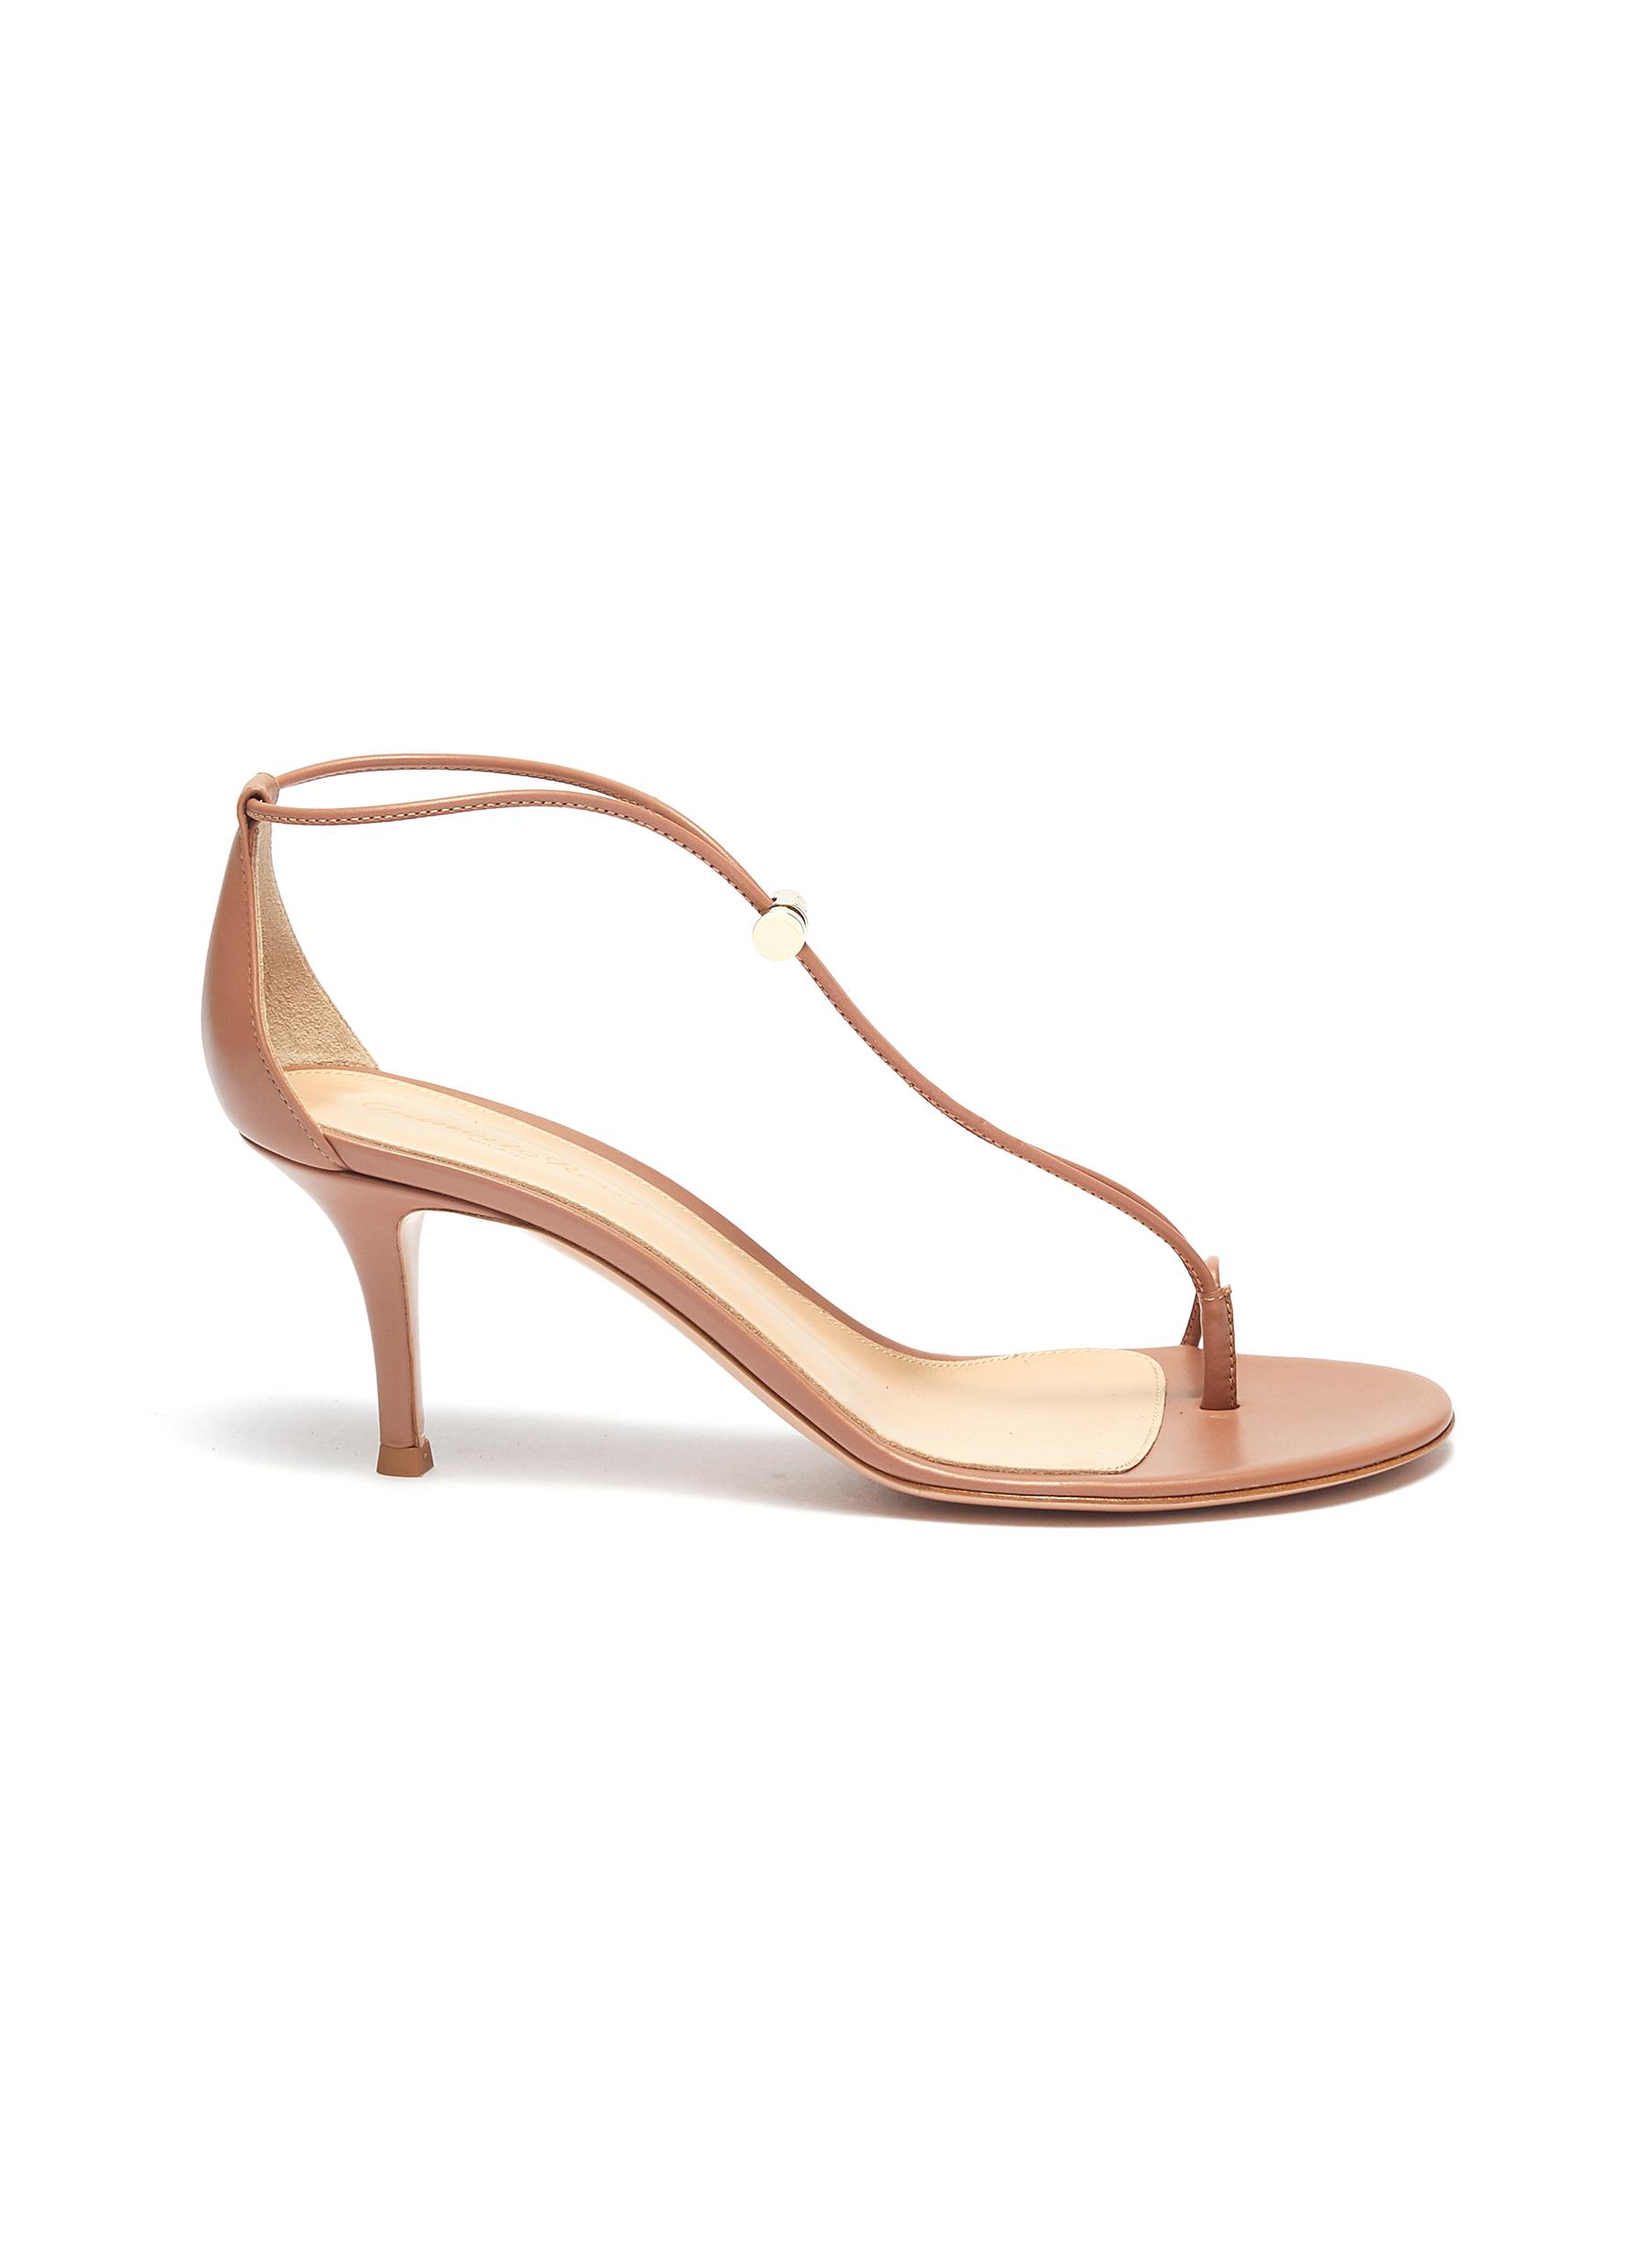 Toe ring toggle leather strap sandals by Gianvito Rossi